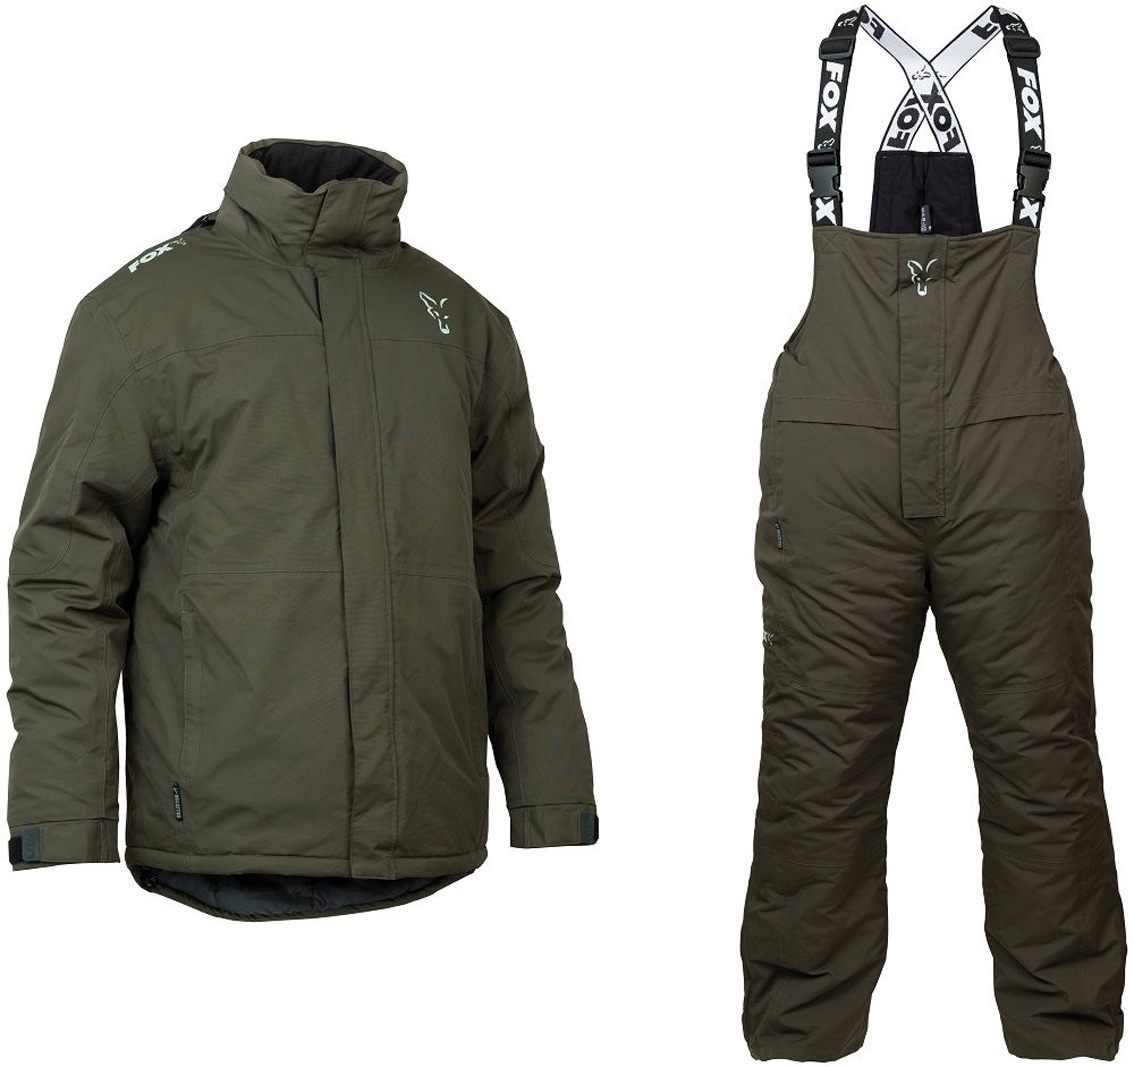 FOX Zimný Oblek Carp Winter Suit